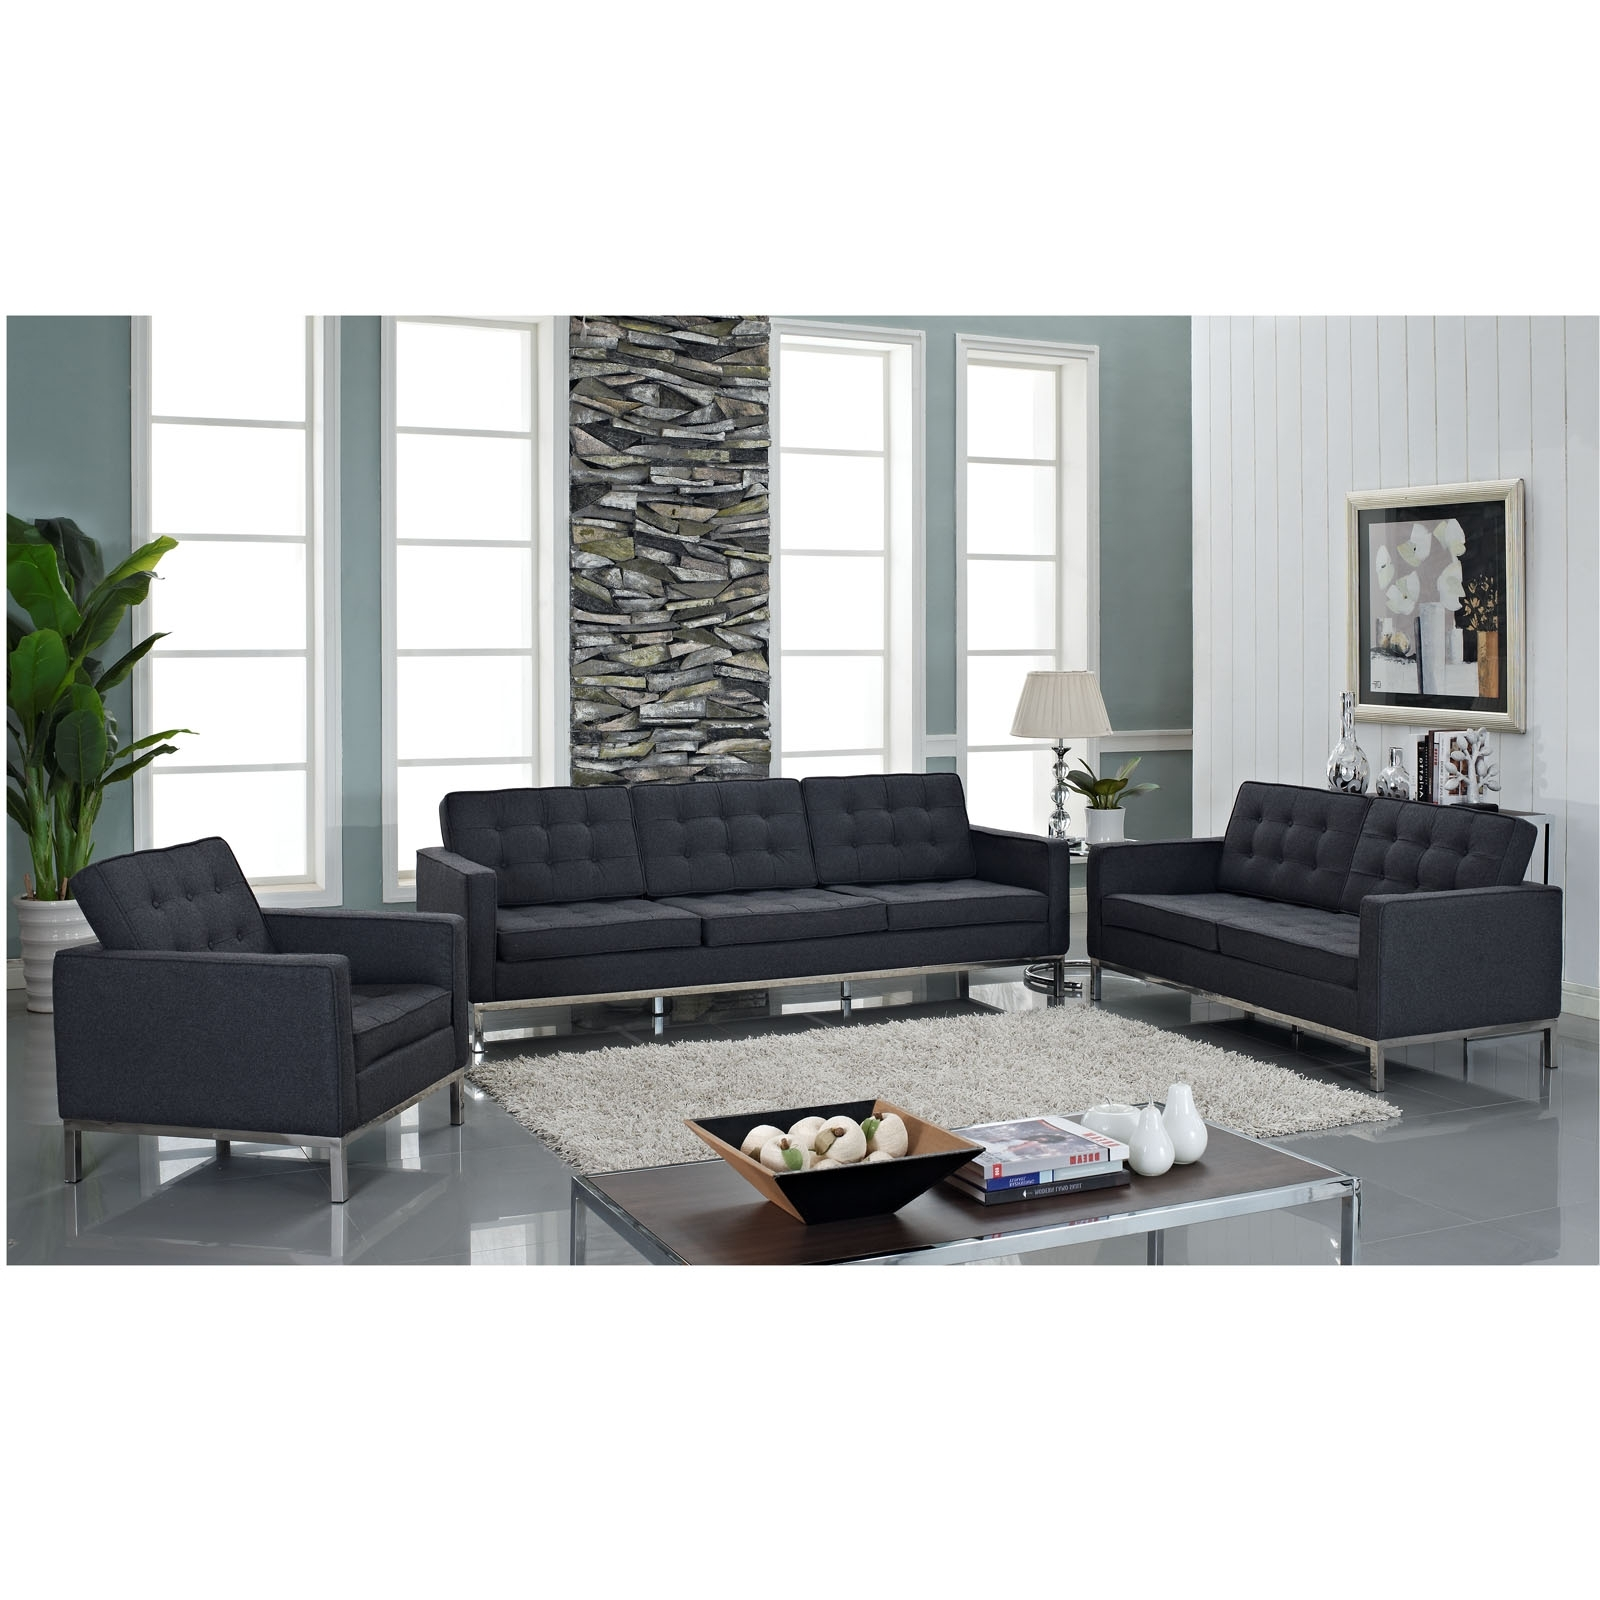 Florence Knoll Style Sofa Couch – Wool In Most Popular Florence Knoll Living Room Sofas (Gallery 13 of 20)